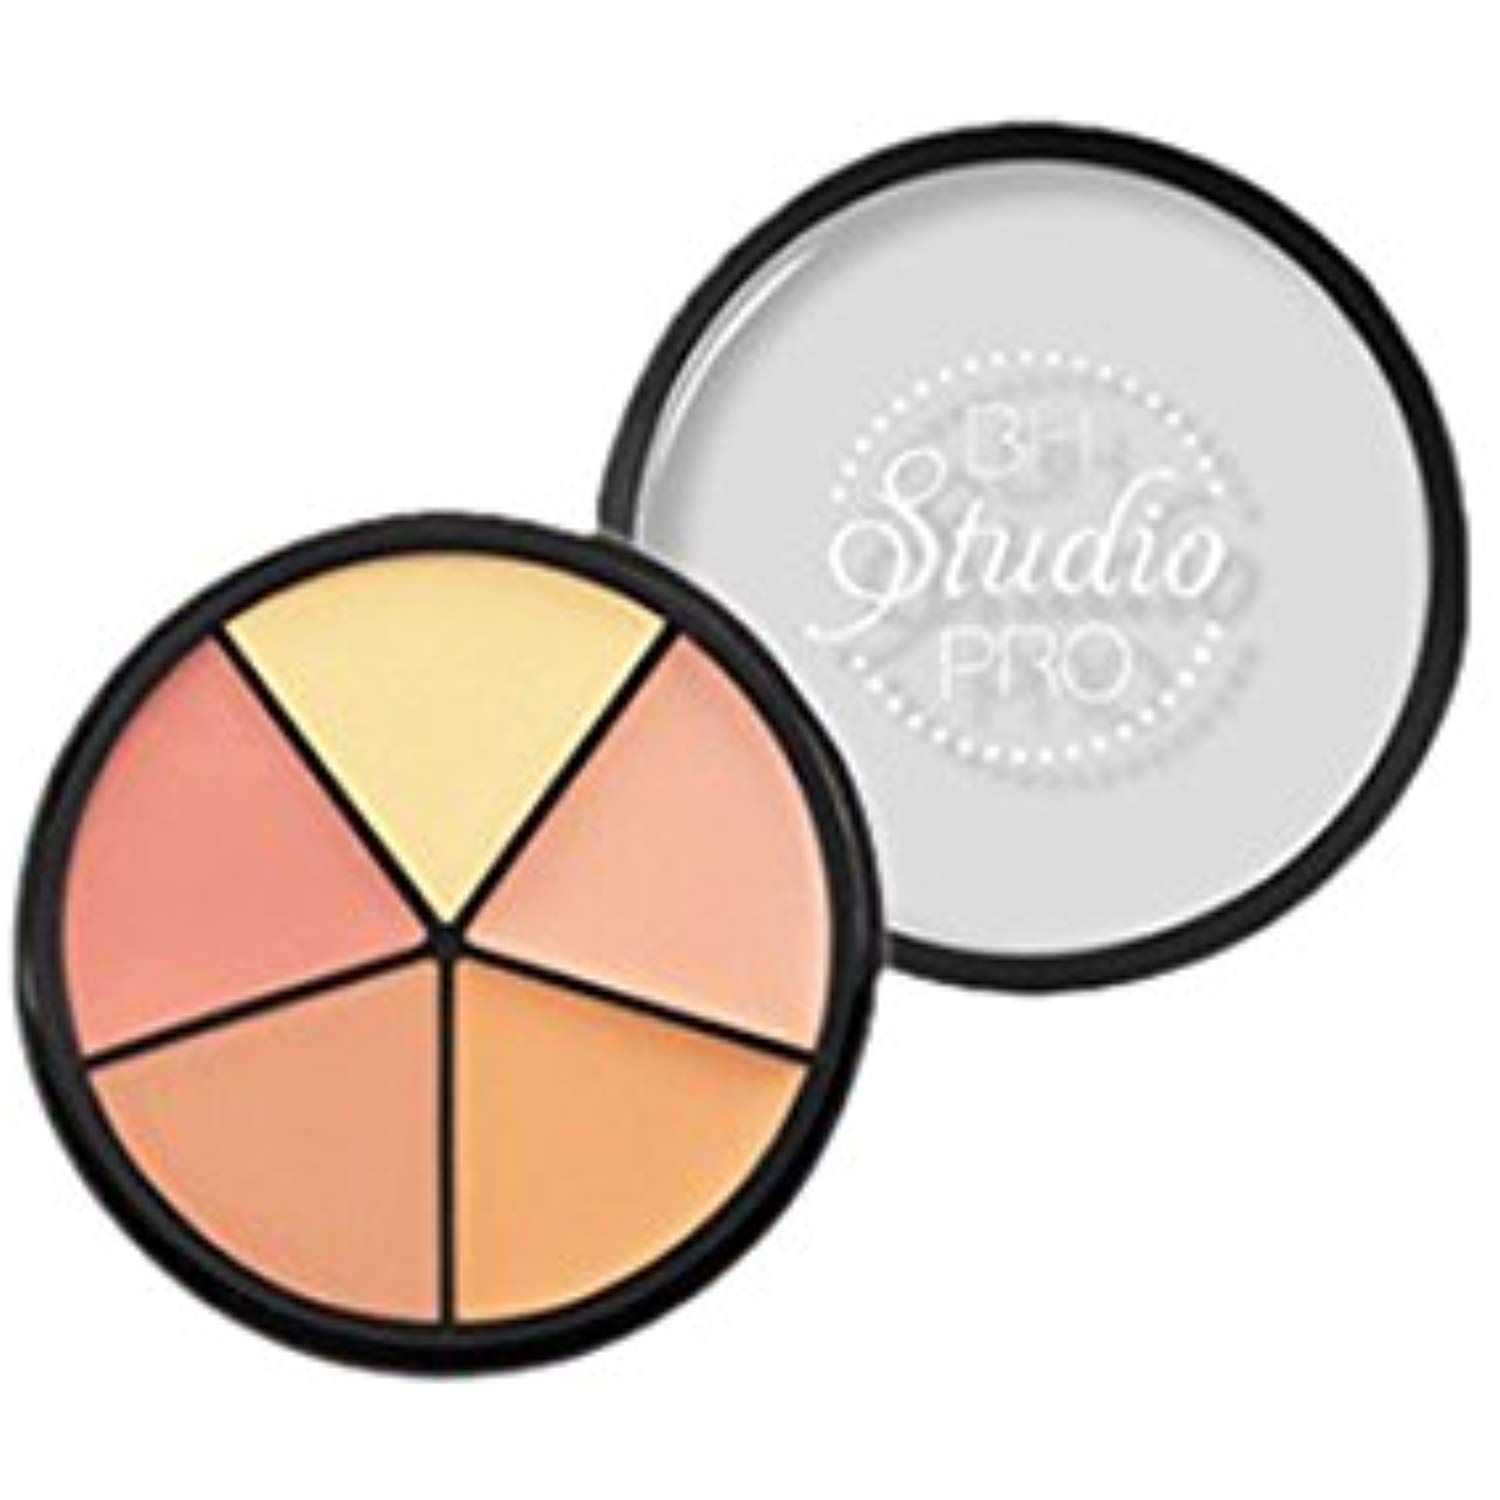 BH Cosmetics Studio Pro Perfecting Concealer Makeup, Light/Medium ** Click image to